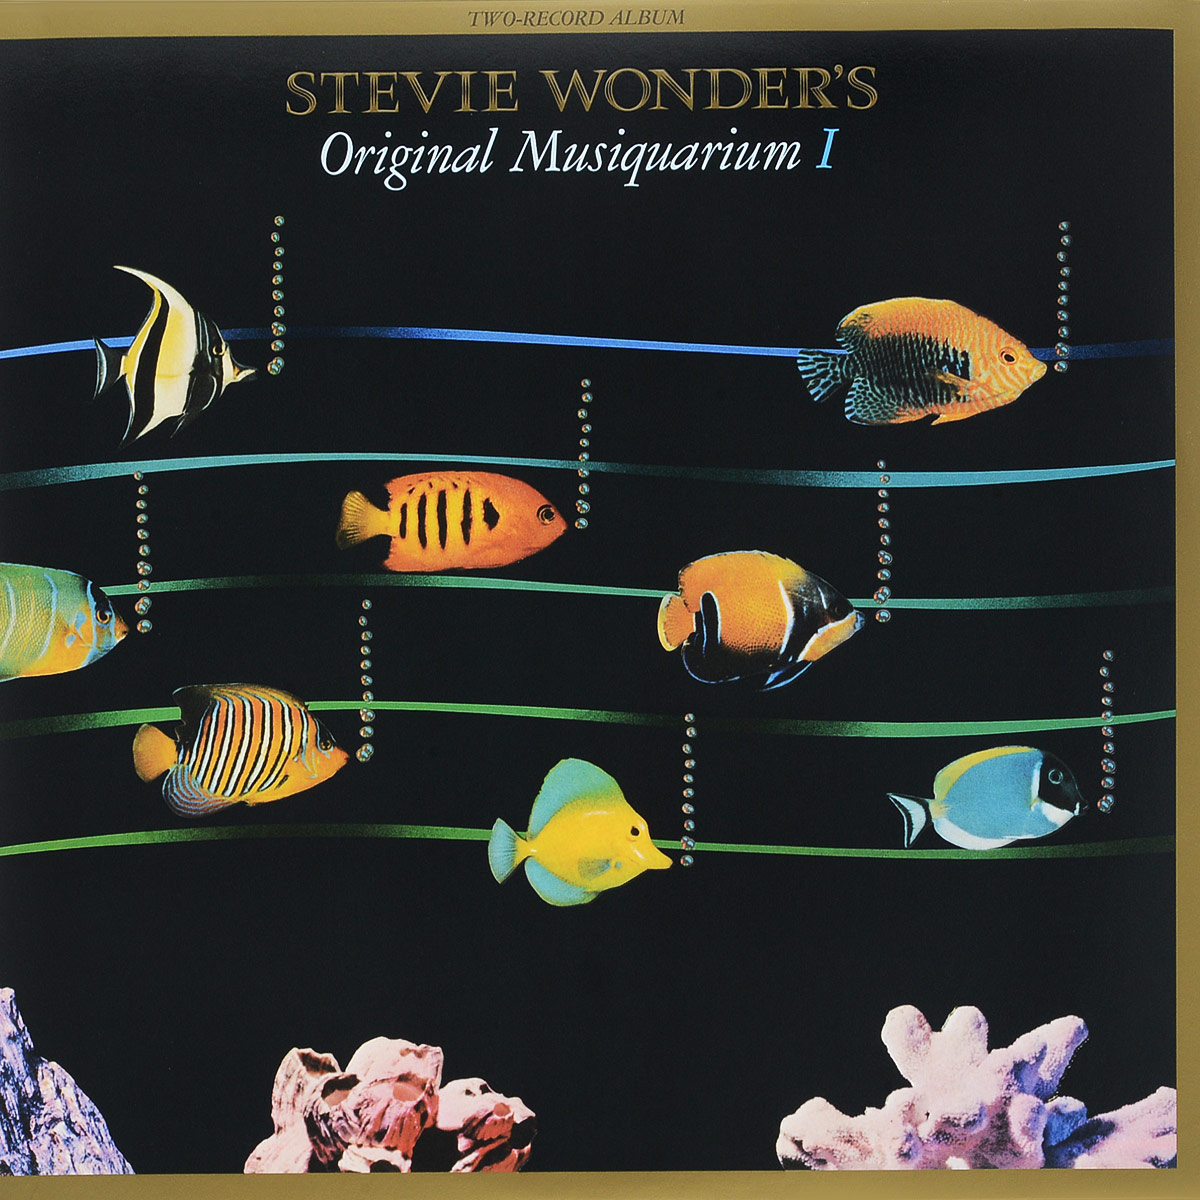 Фото - Стиви Уандер Stevie Wonder. Original Musiquarium I (2 LP) стиви уандер stevie wonder number ones